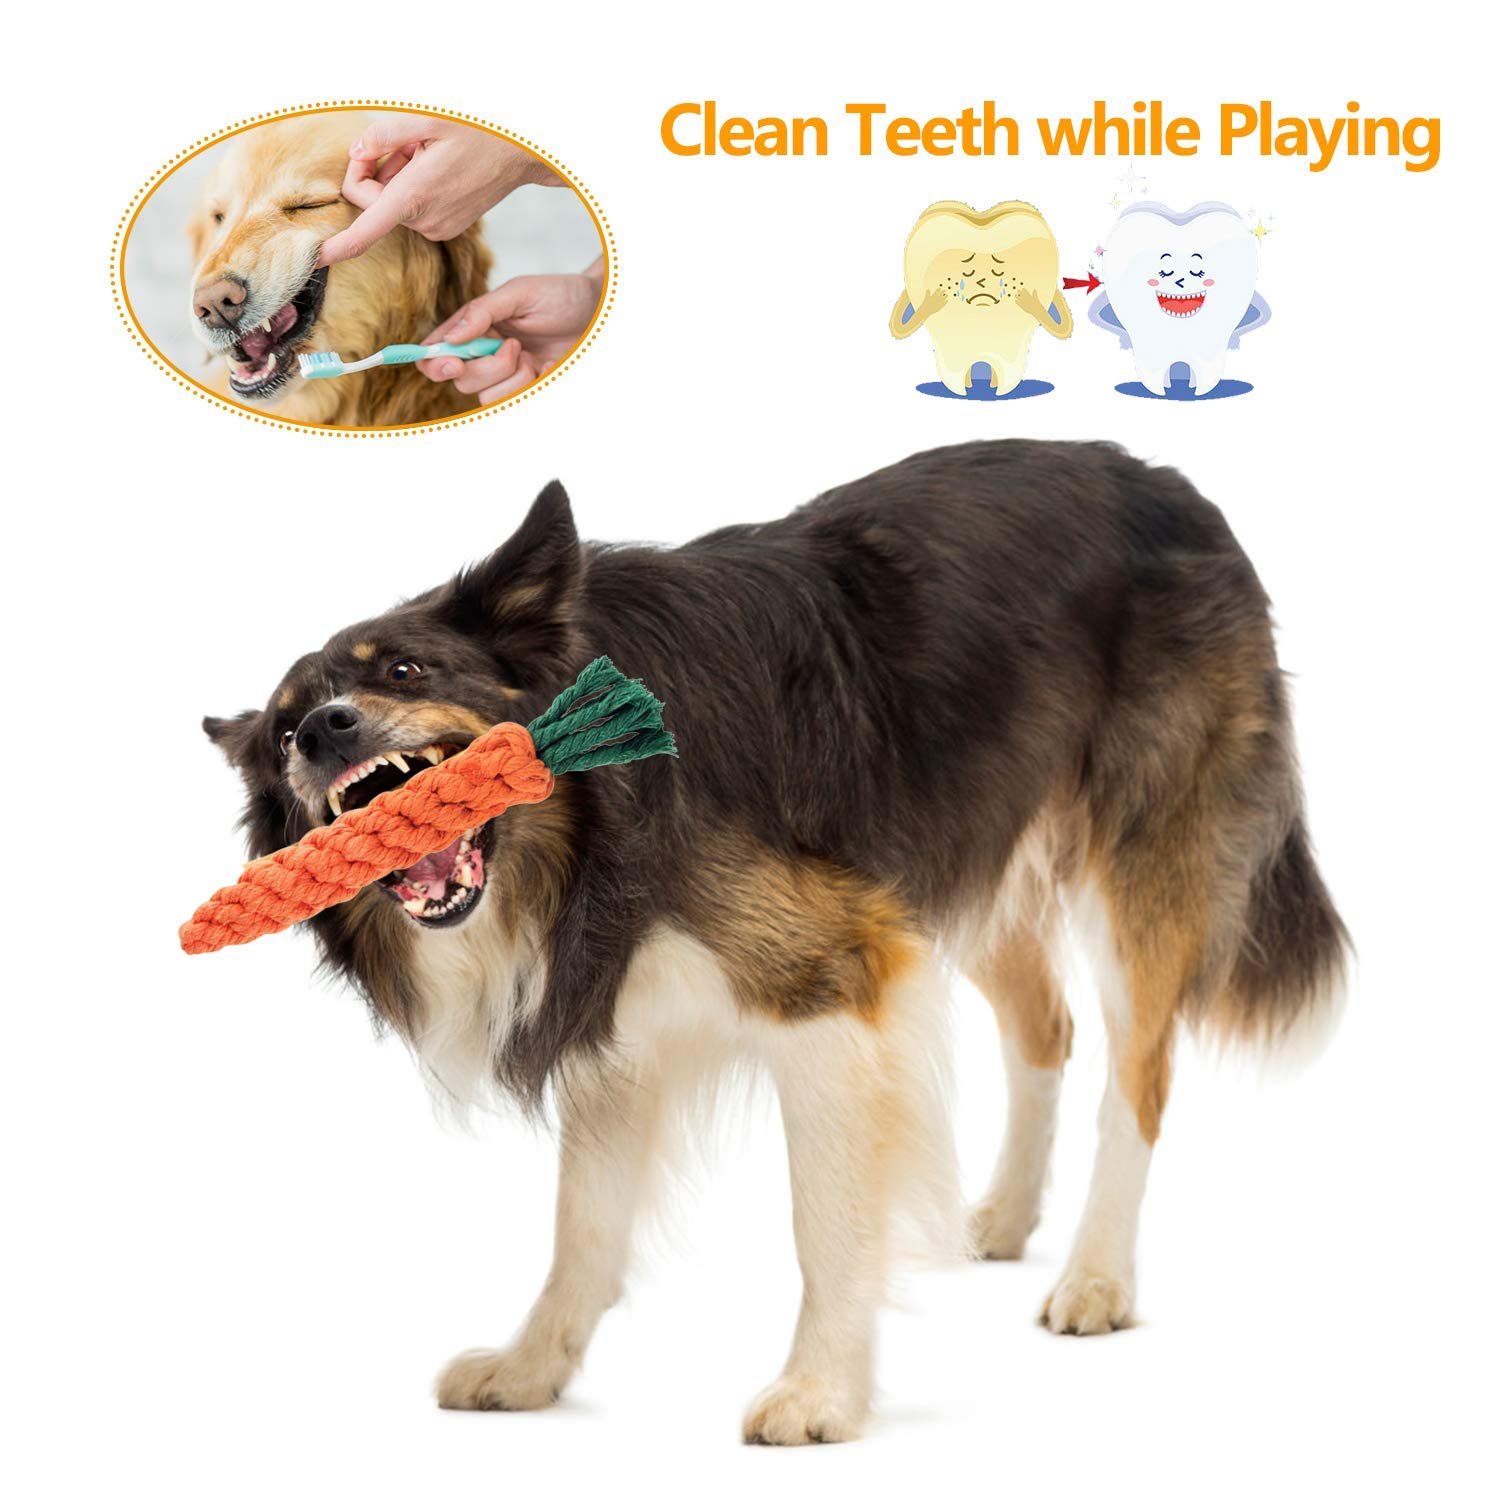 Puppy Chew Toys - 5 PCS Puppy Rope Toys Set, Puppy Chew Durable Interactive Cotton Toys Dental Health Teeth Cleaning (5 Pack)